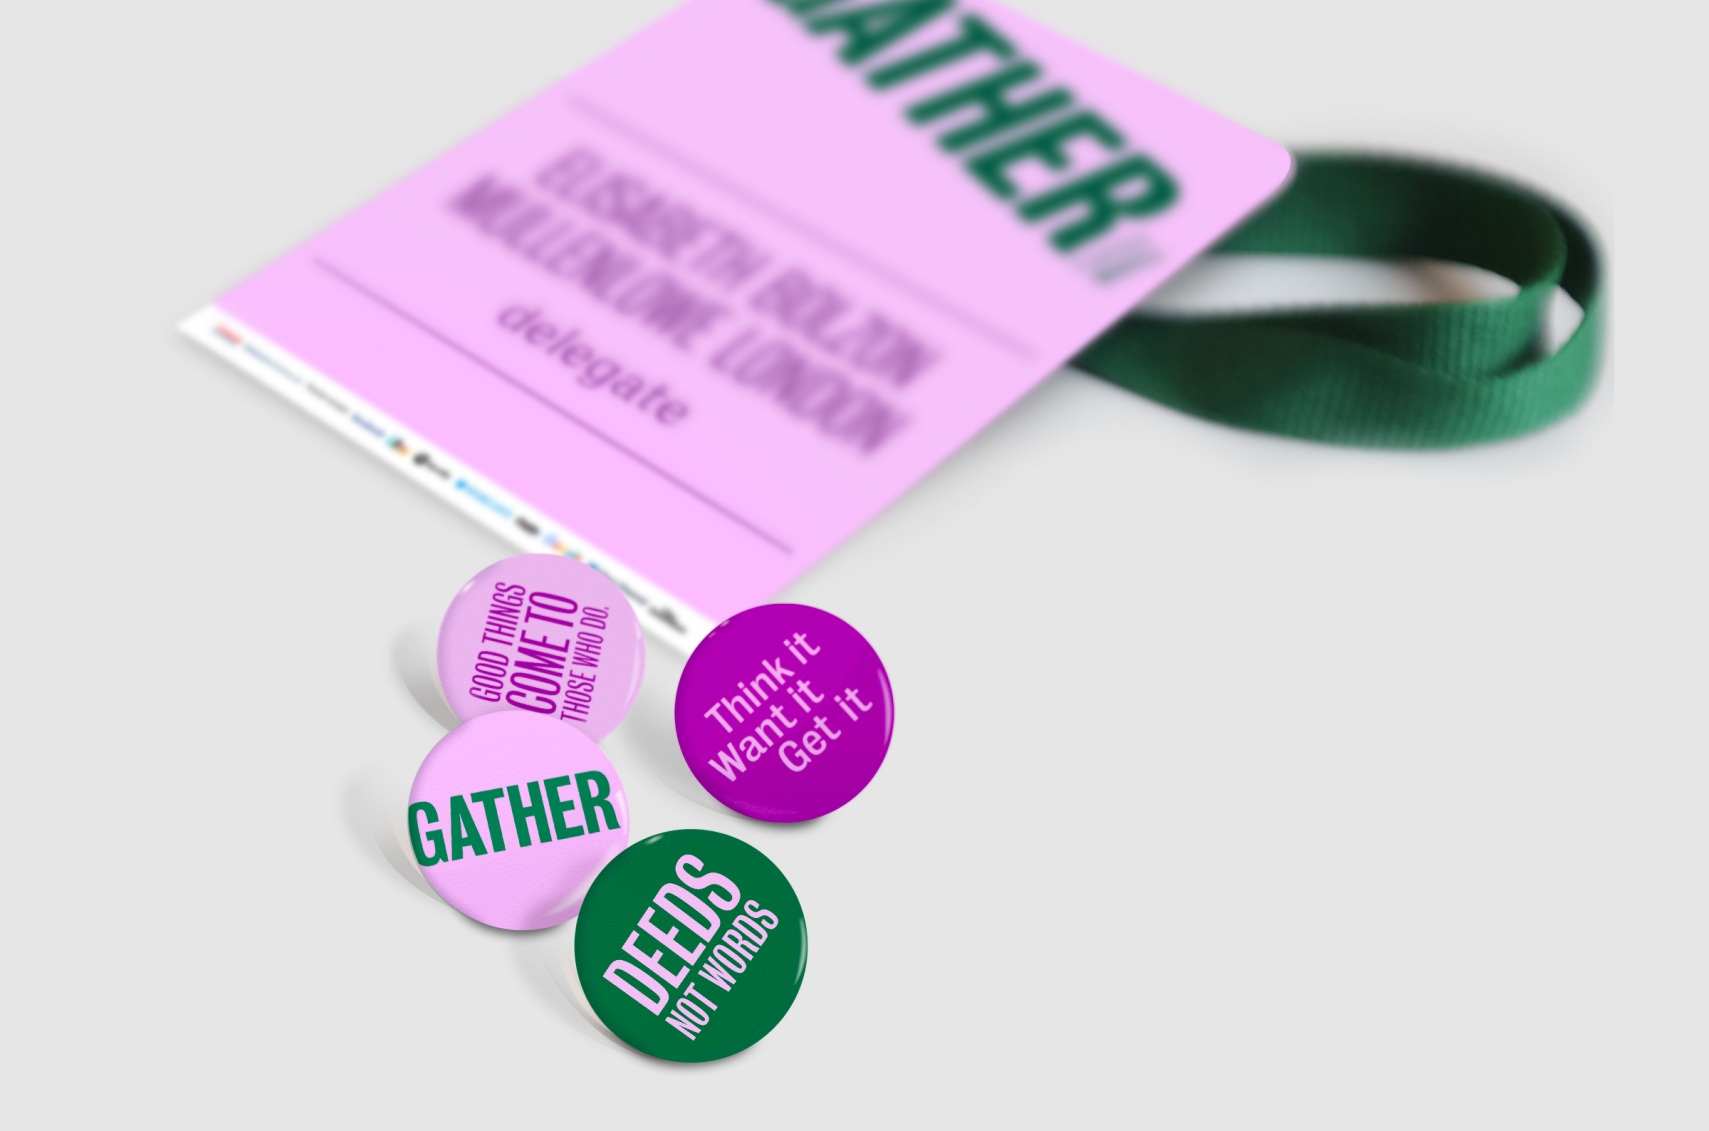 Gather2018_badges_lanyard2.jpg